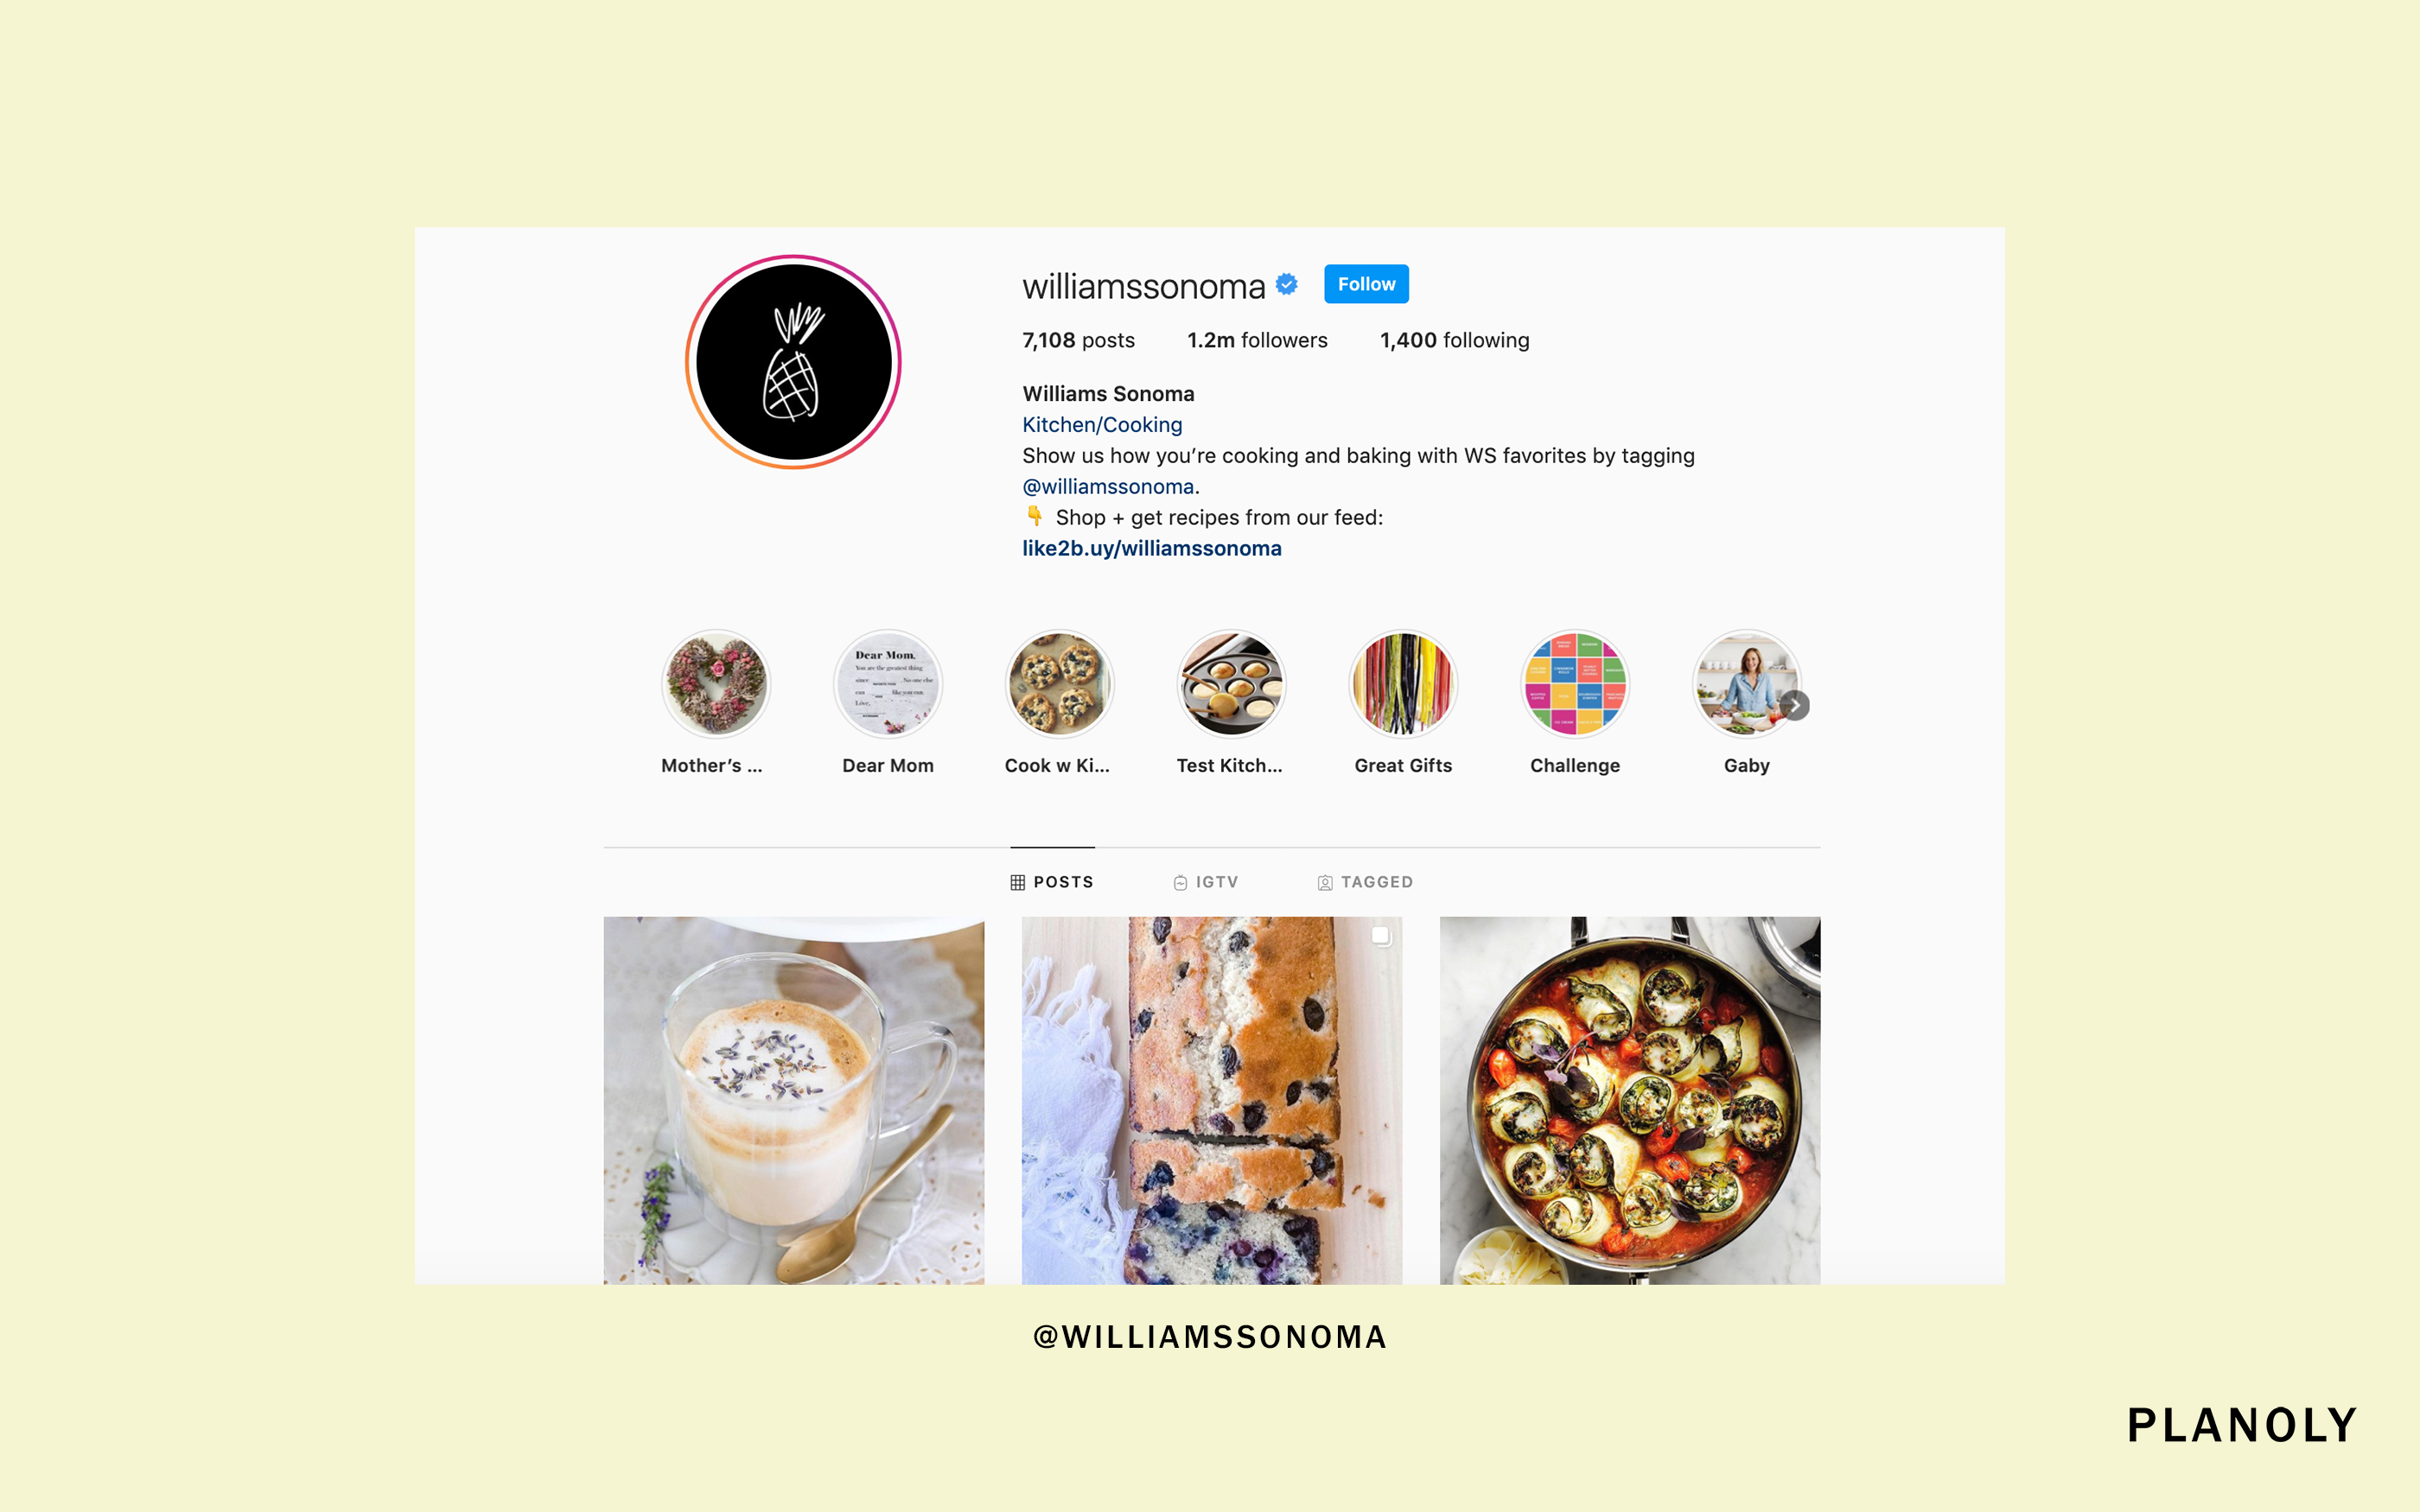 PLANOLY - Blog Post - How to Create Instagram Stories Highlights That Serve Your Customers - Image 4